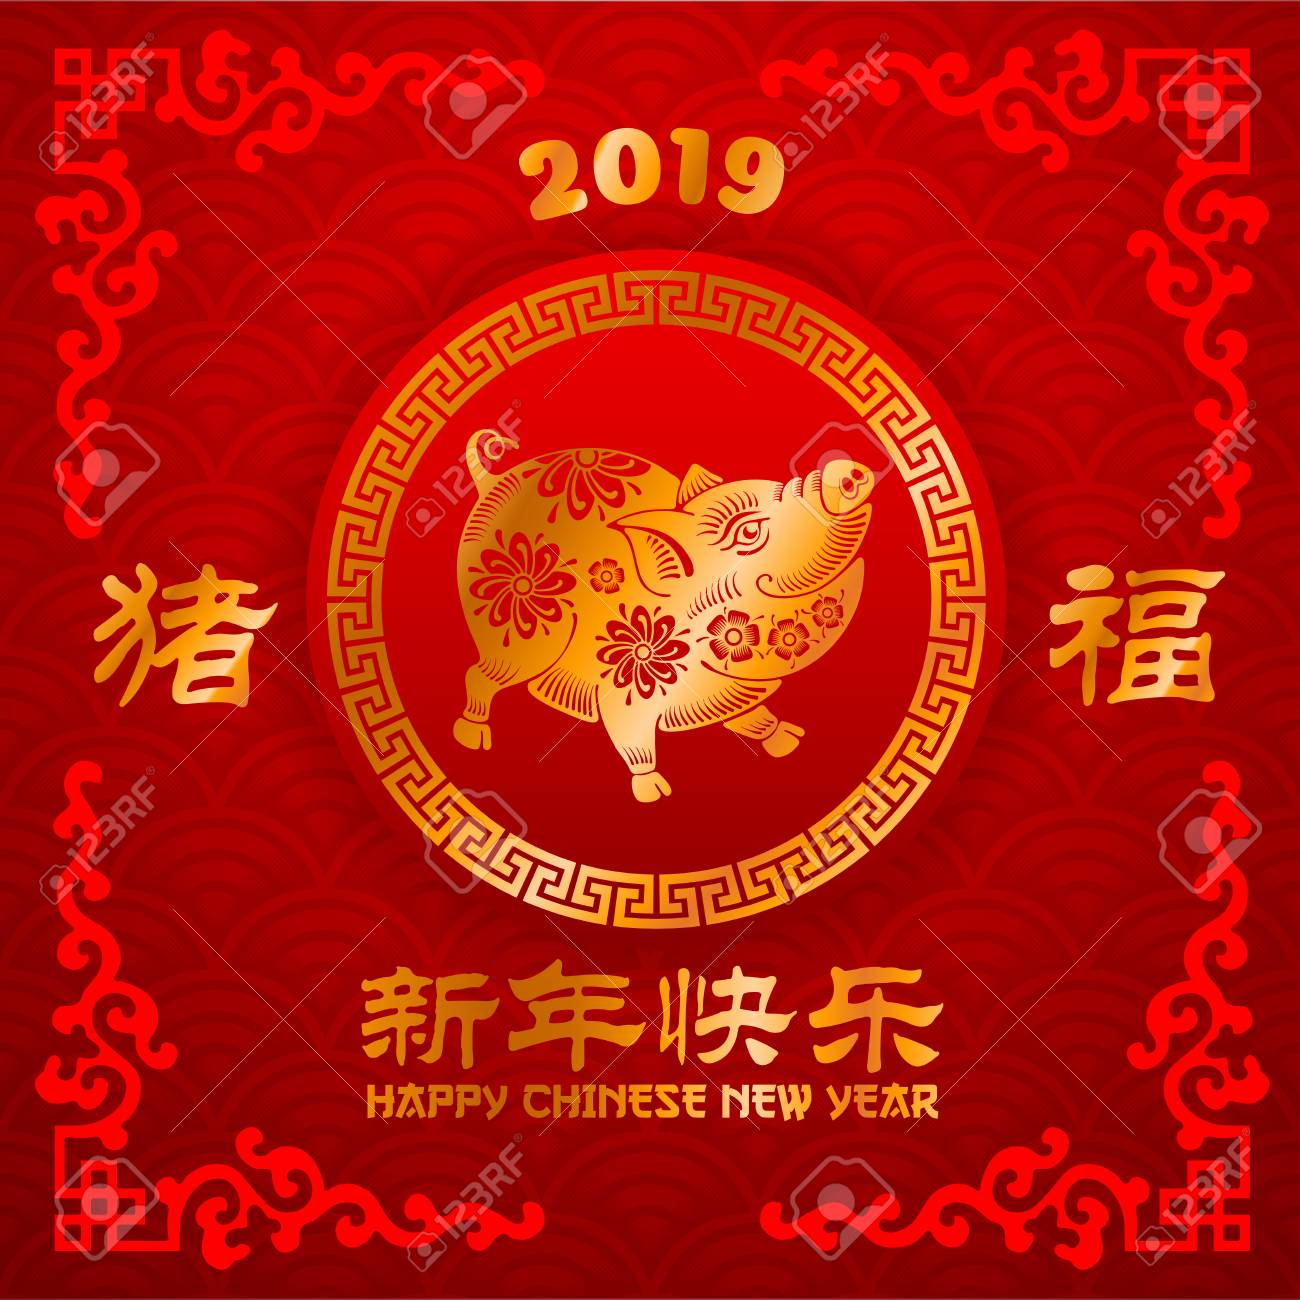 Happy Chinese New Year of the Pig!